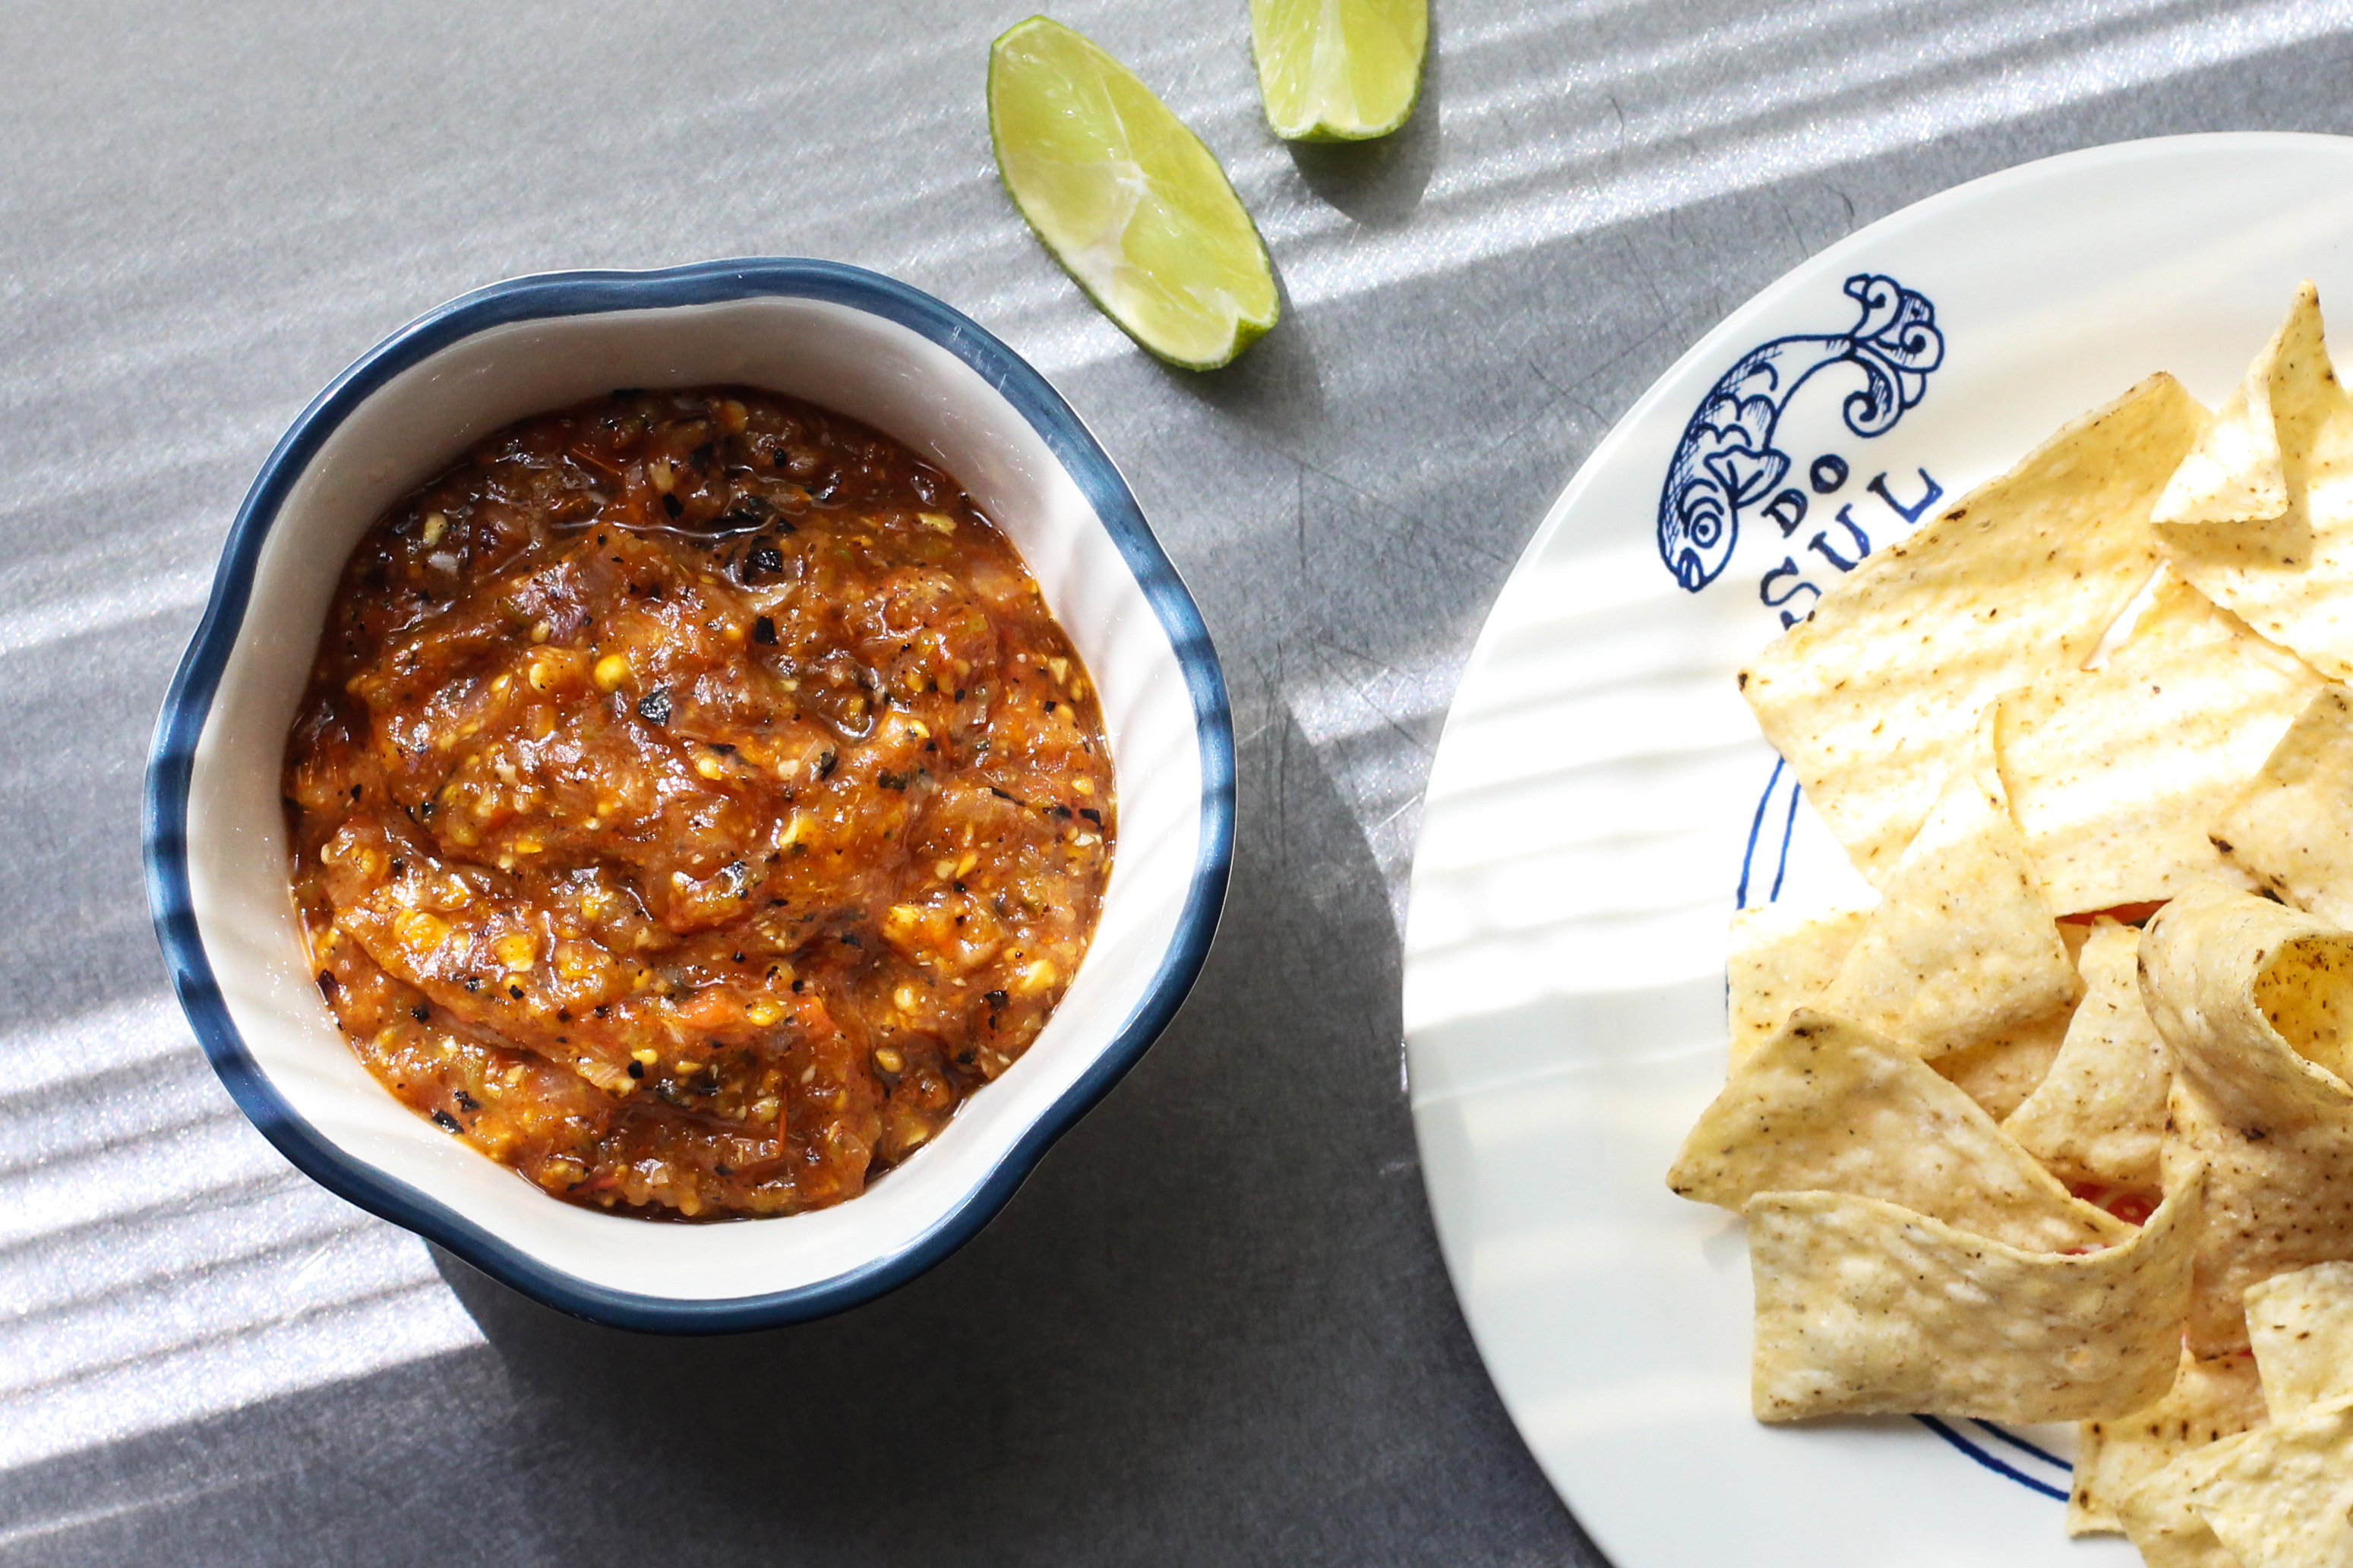 Blackened Salsa